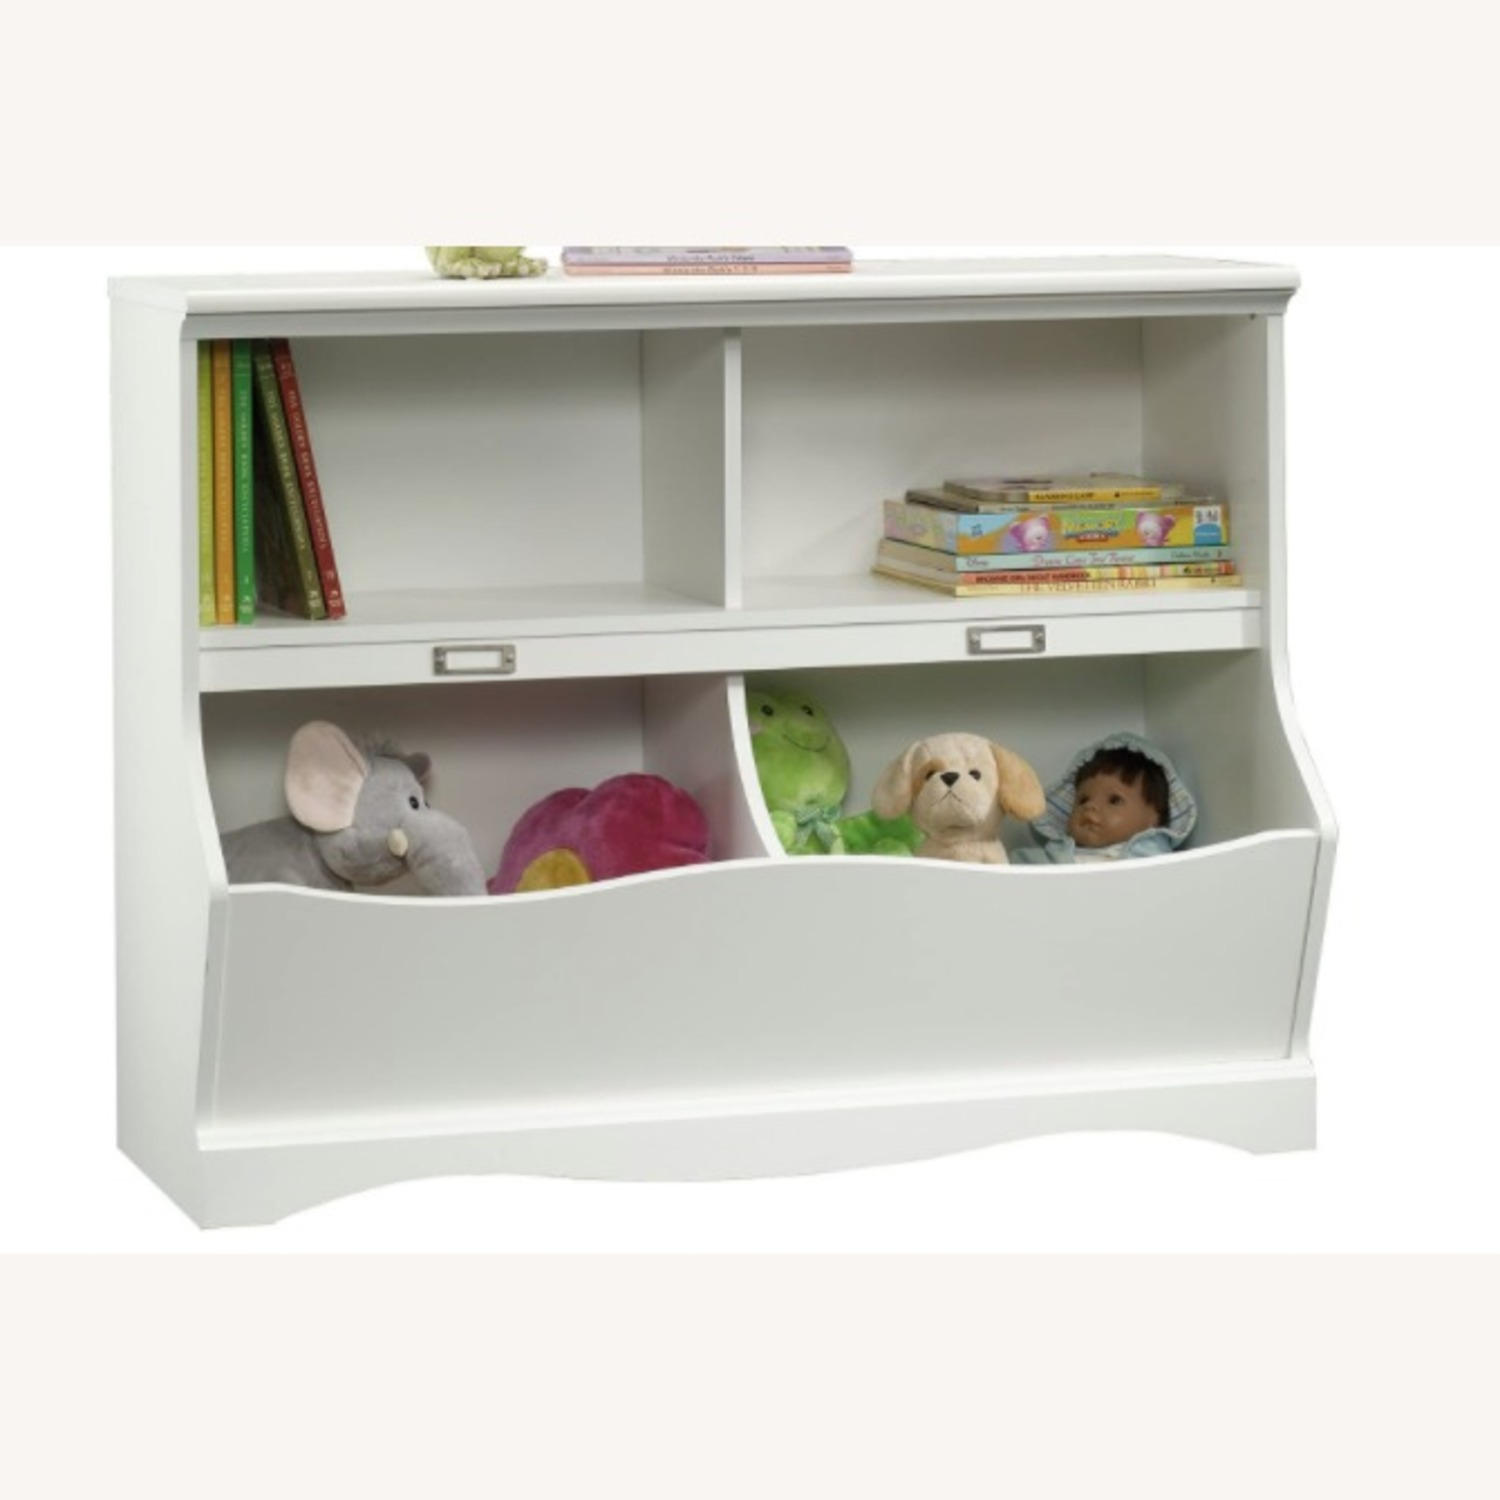 Modern Traditional 2 Tier White Bookcase Storage - image-1